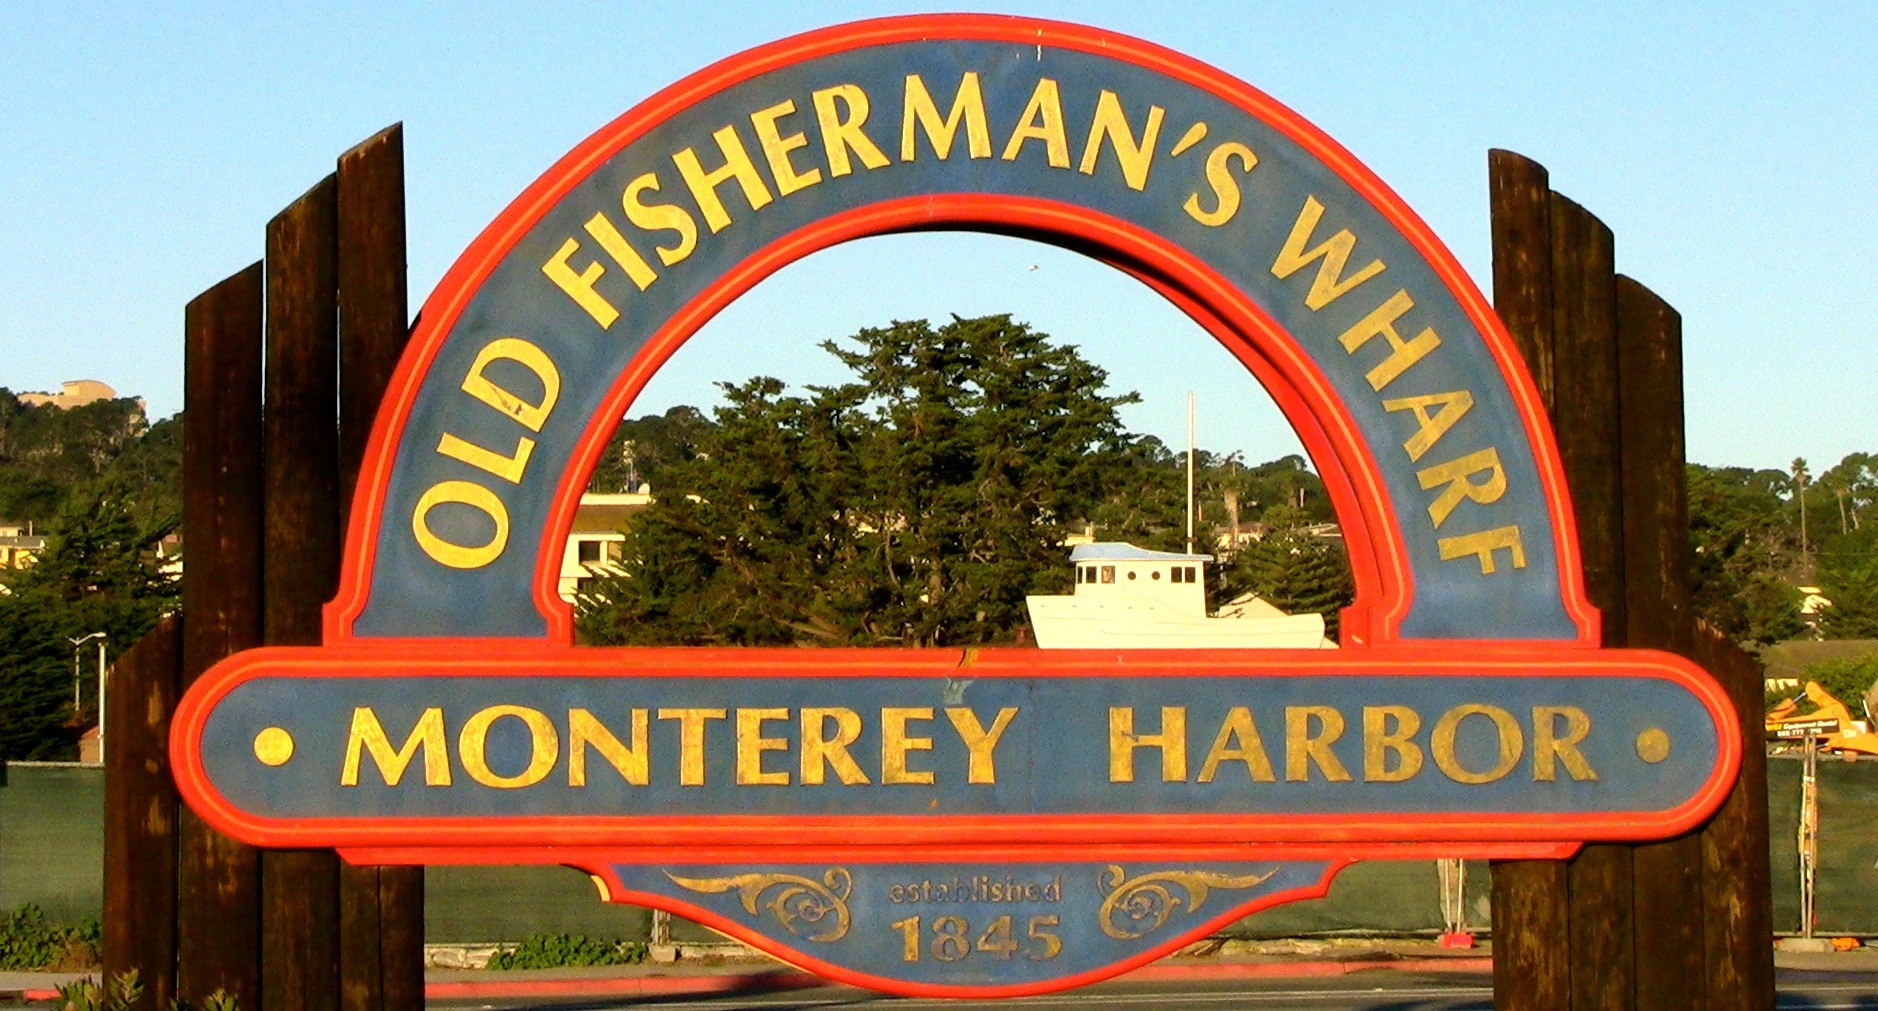 Old_Fisherman's_Wharf_Sign,_Monterey,_CA,_4_December,_2011